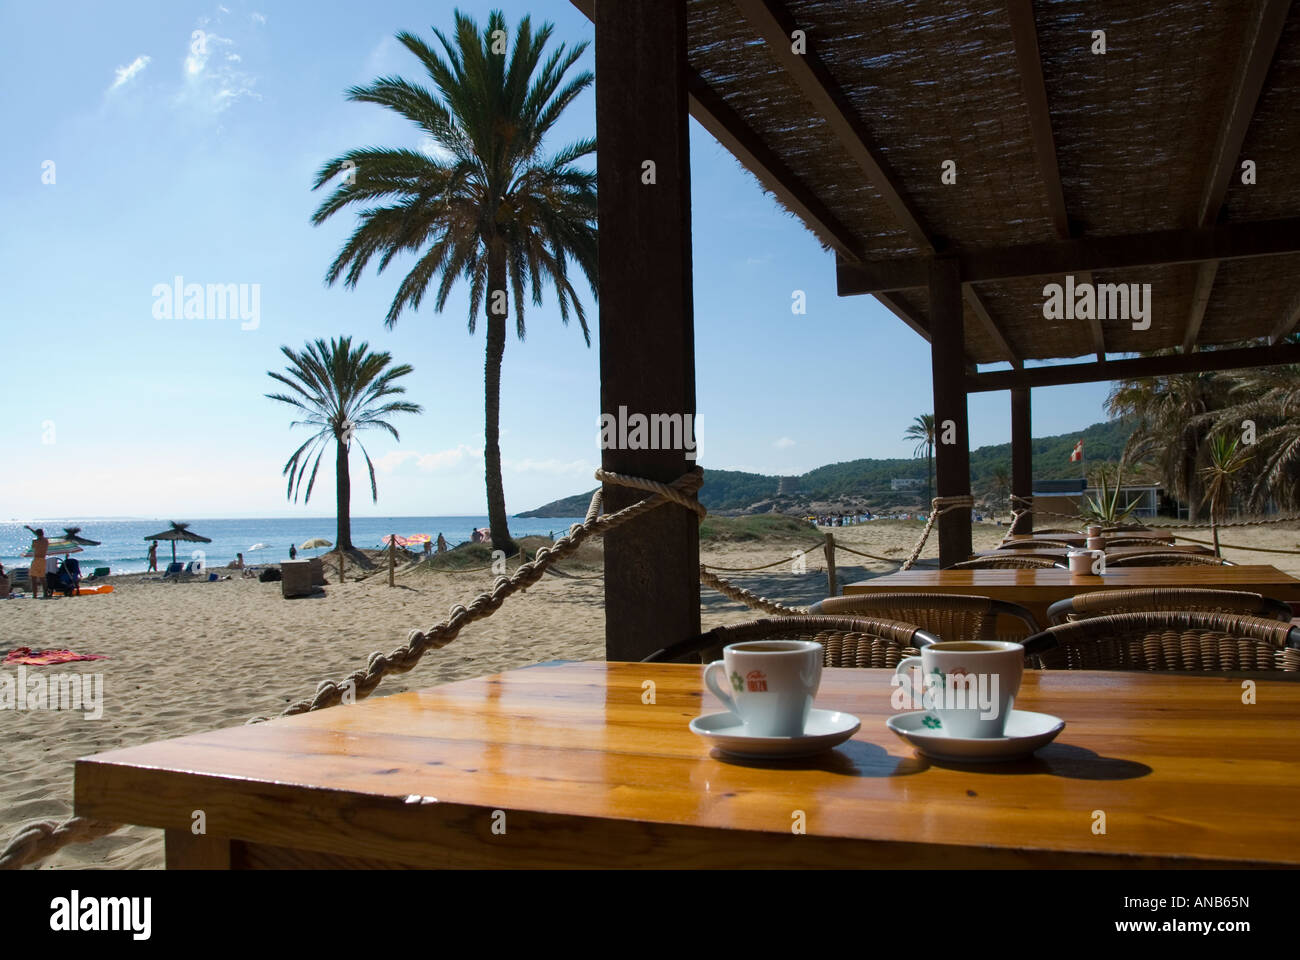 coffee cups on a wooden table in a beach cafe, overlooking the